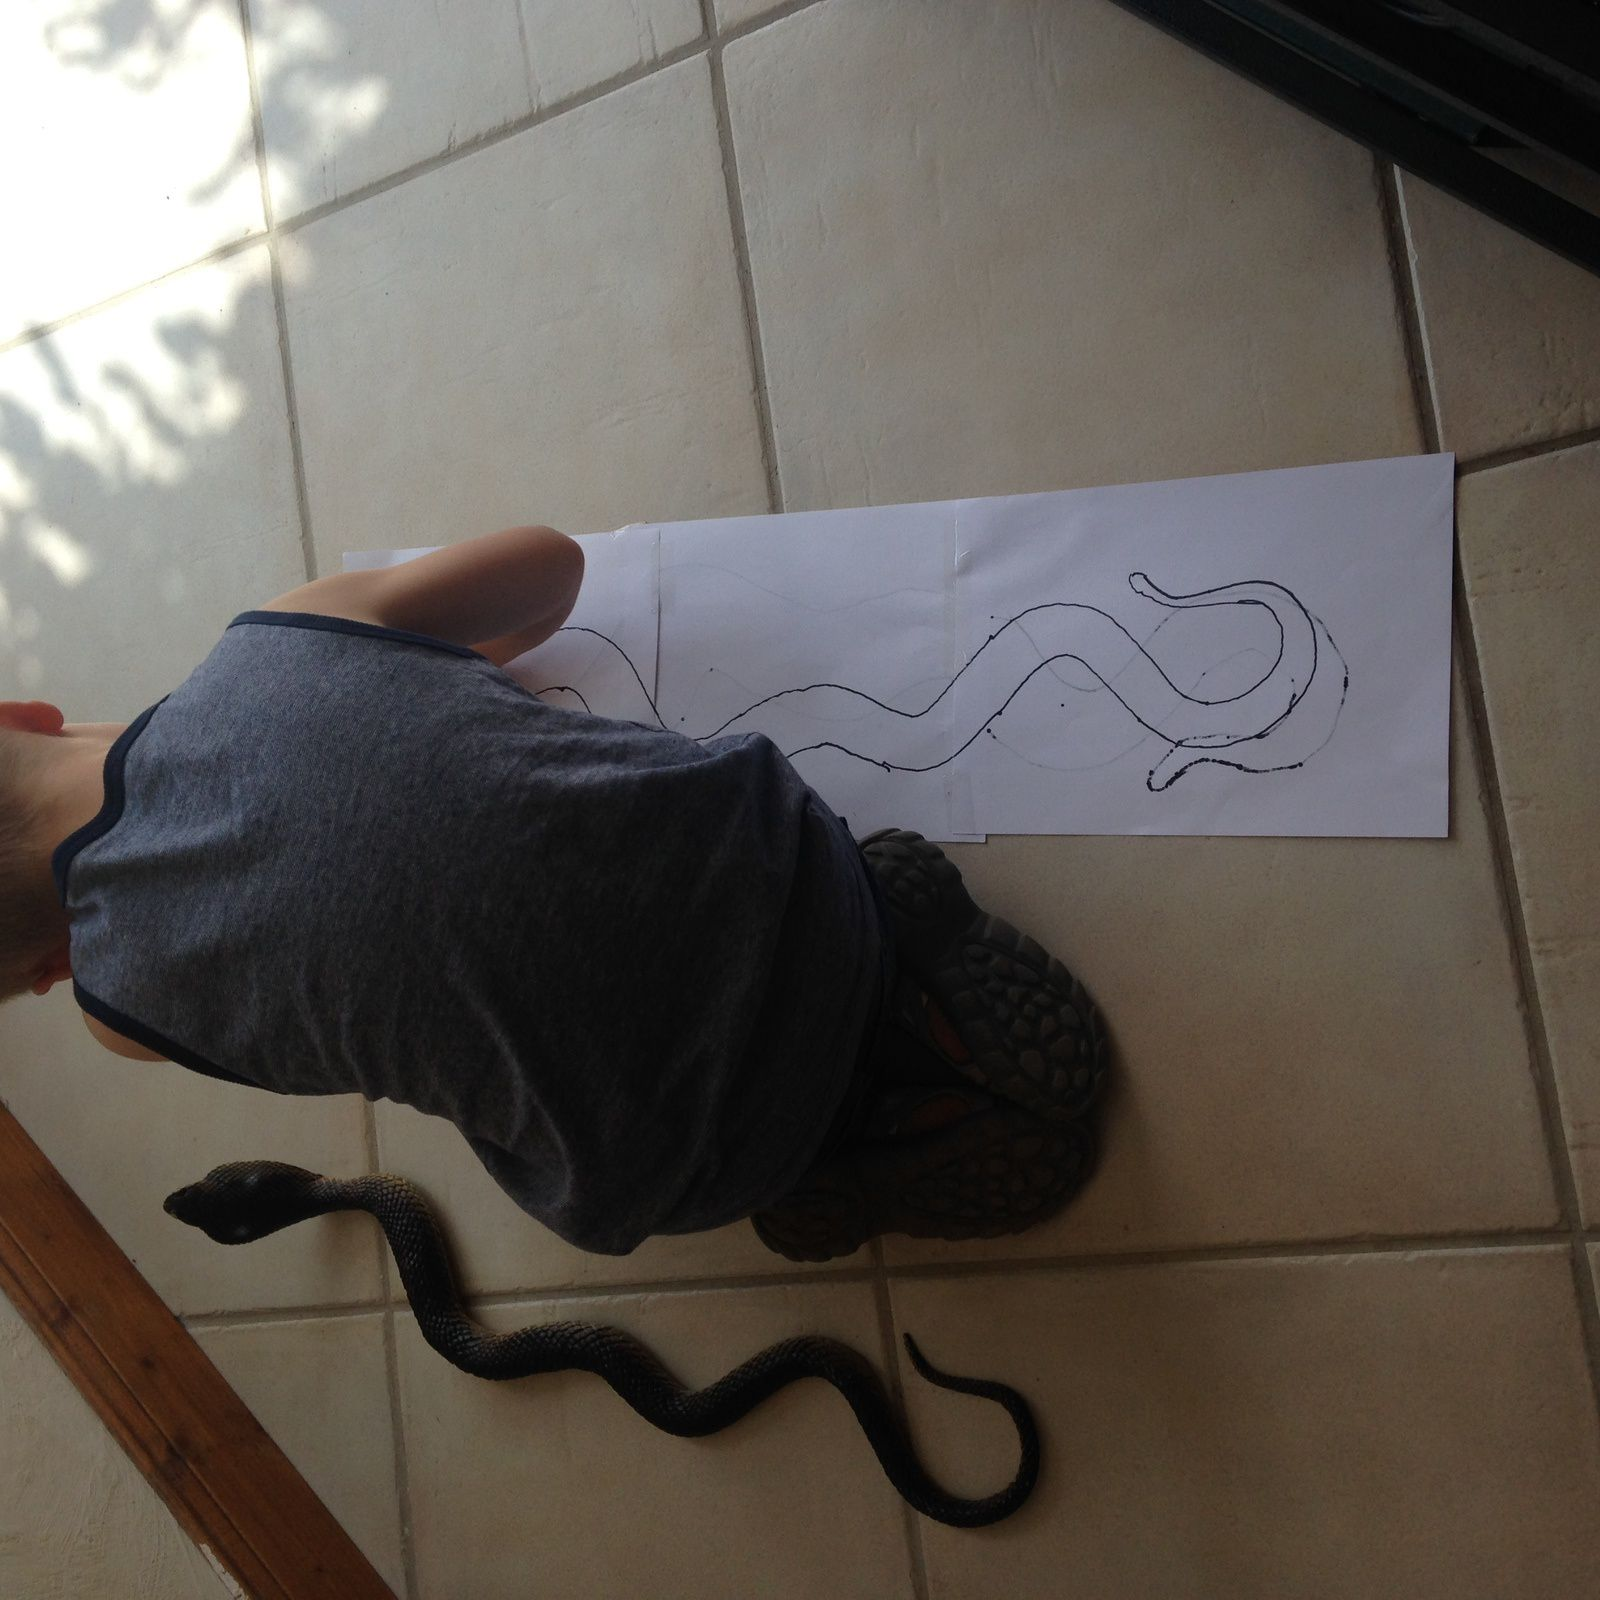 DESSINER UN SERPENT -